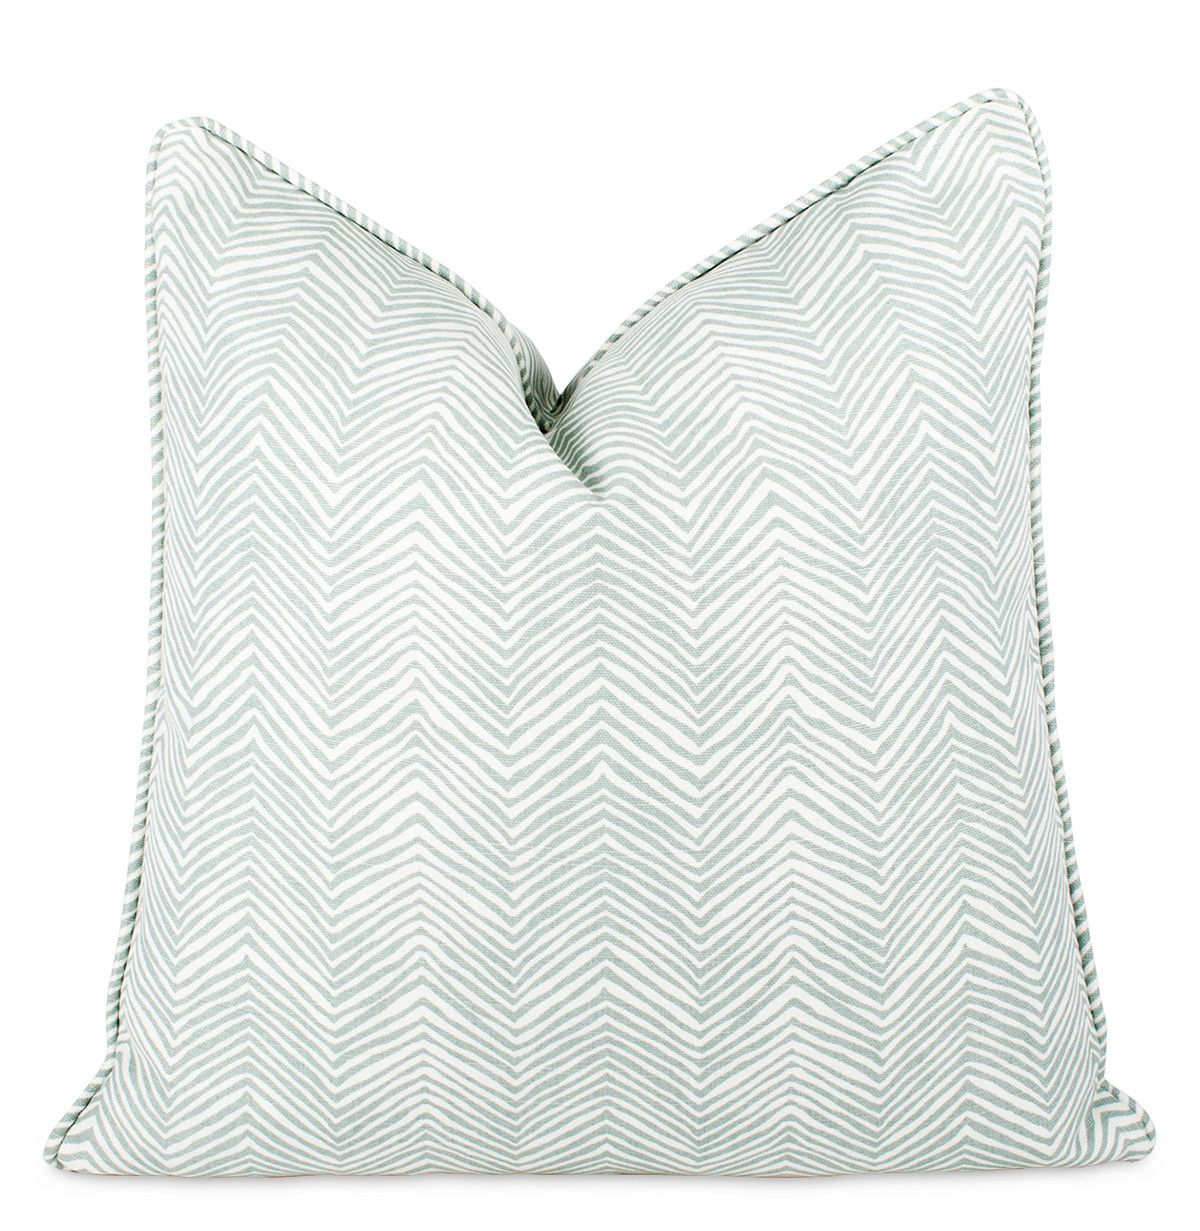 """China Seas Bali Zig Zag Throw Pillow, self welt with invisible zipper closure, down insert included, 22""""sq, $135"""